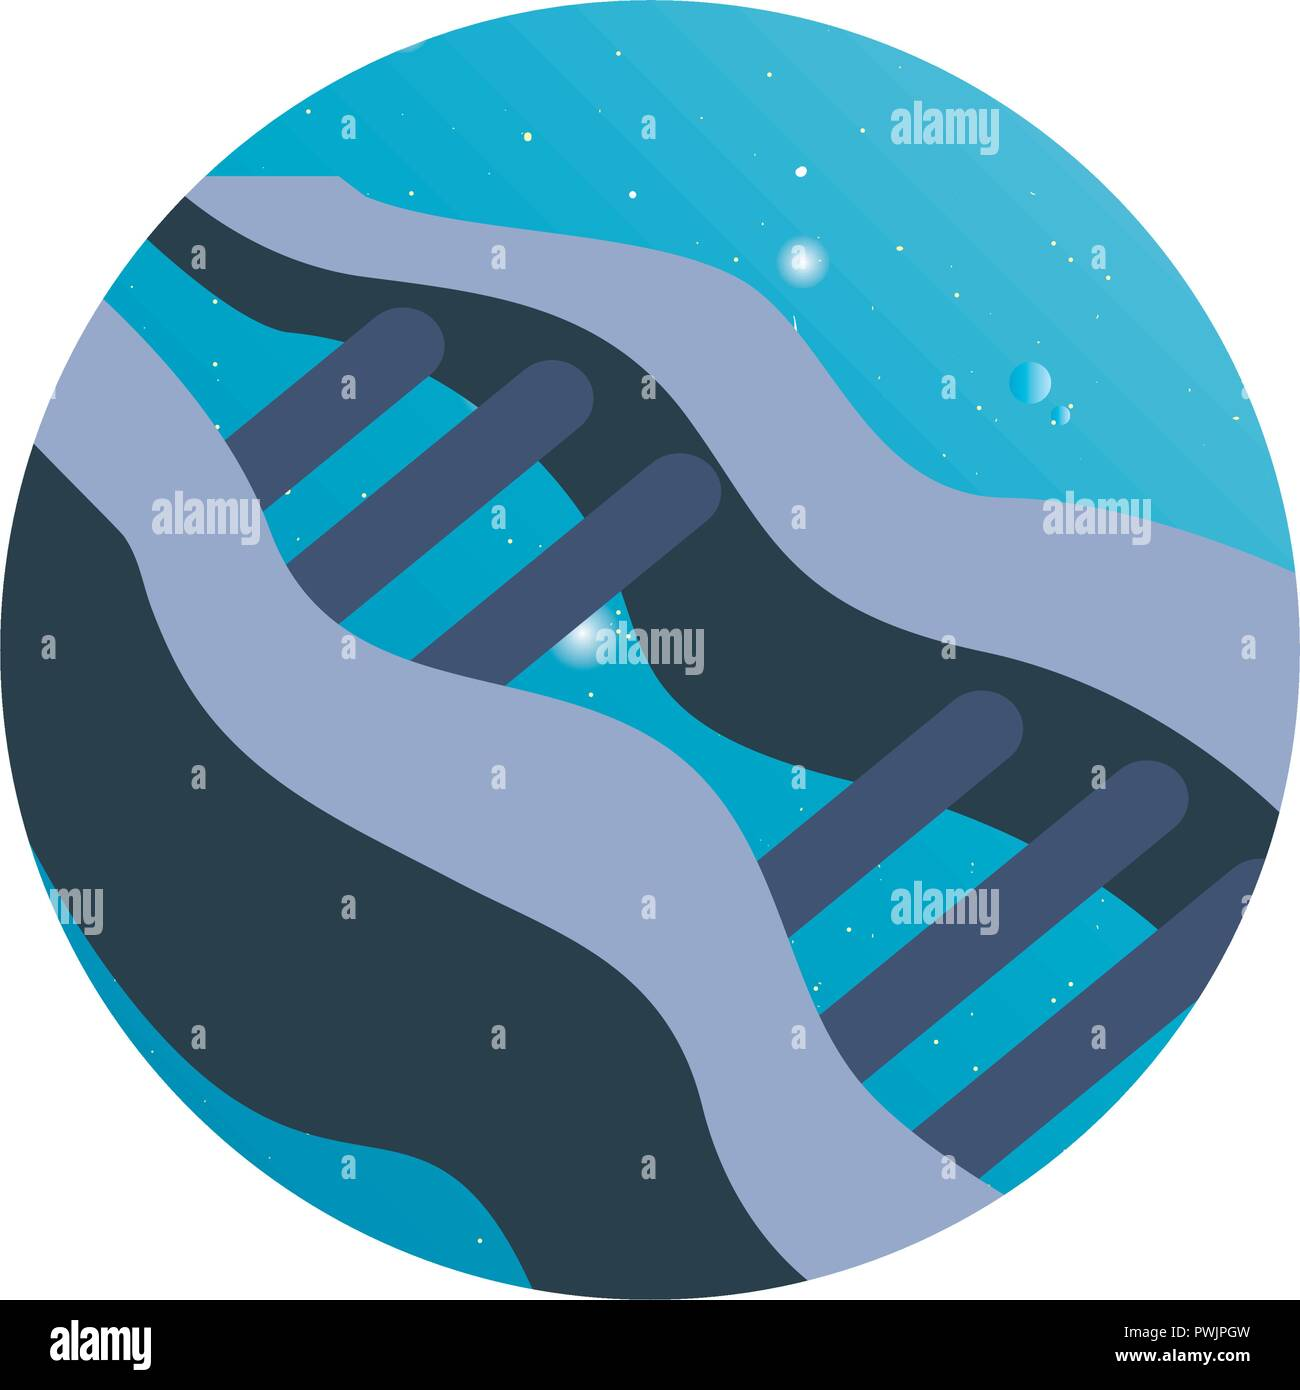 dna genetic material science sticker vector illustration - Stock Image